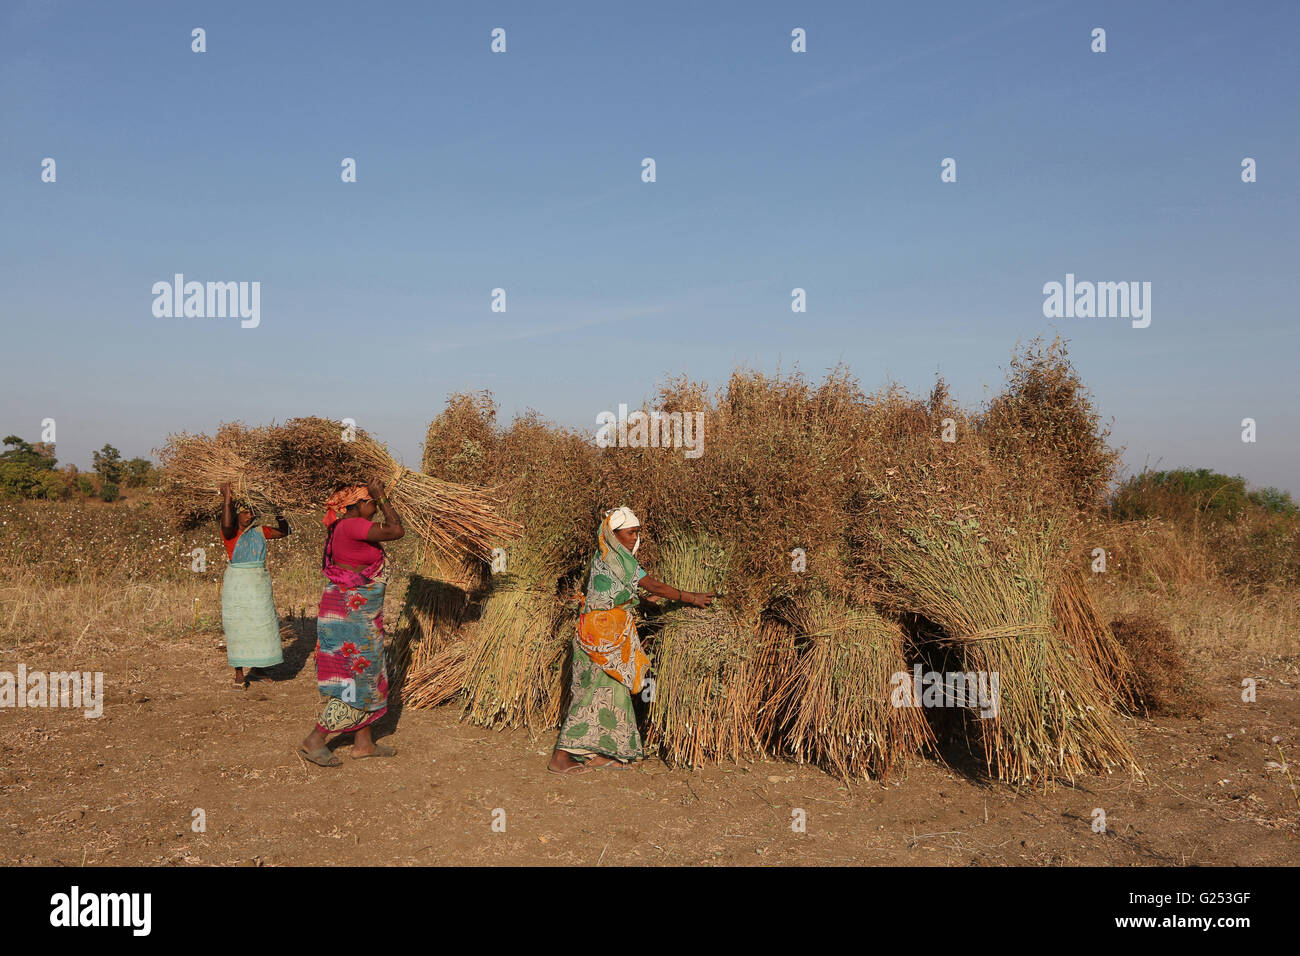 PRADHAN TRIBE - Tribal women stacking the Tur sheaf. Pradhan boti Village, Kalam Taluka, in Maharashtra in India - Stock Image